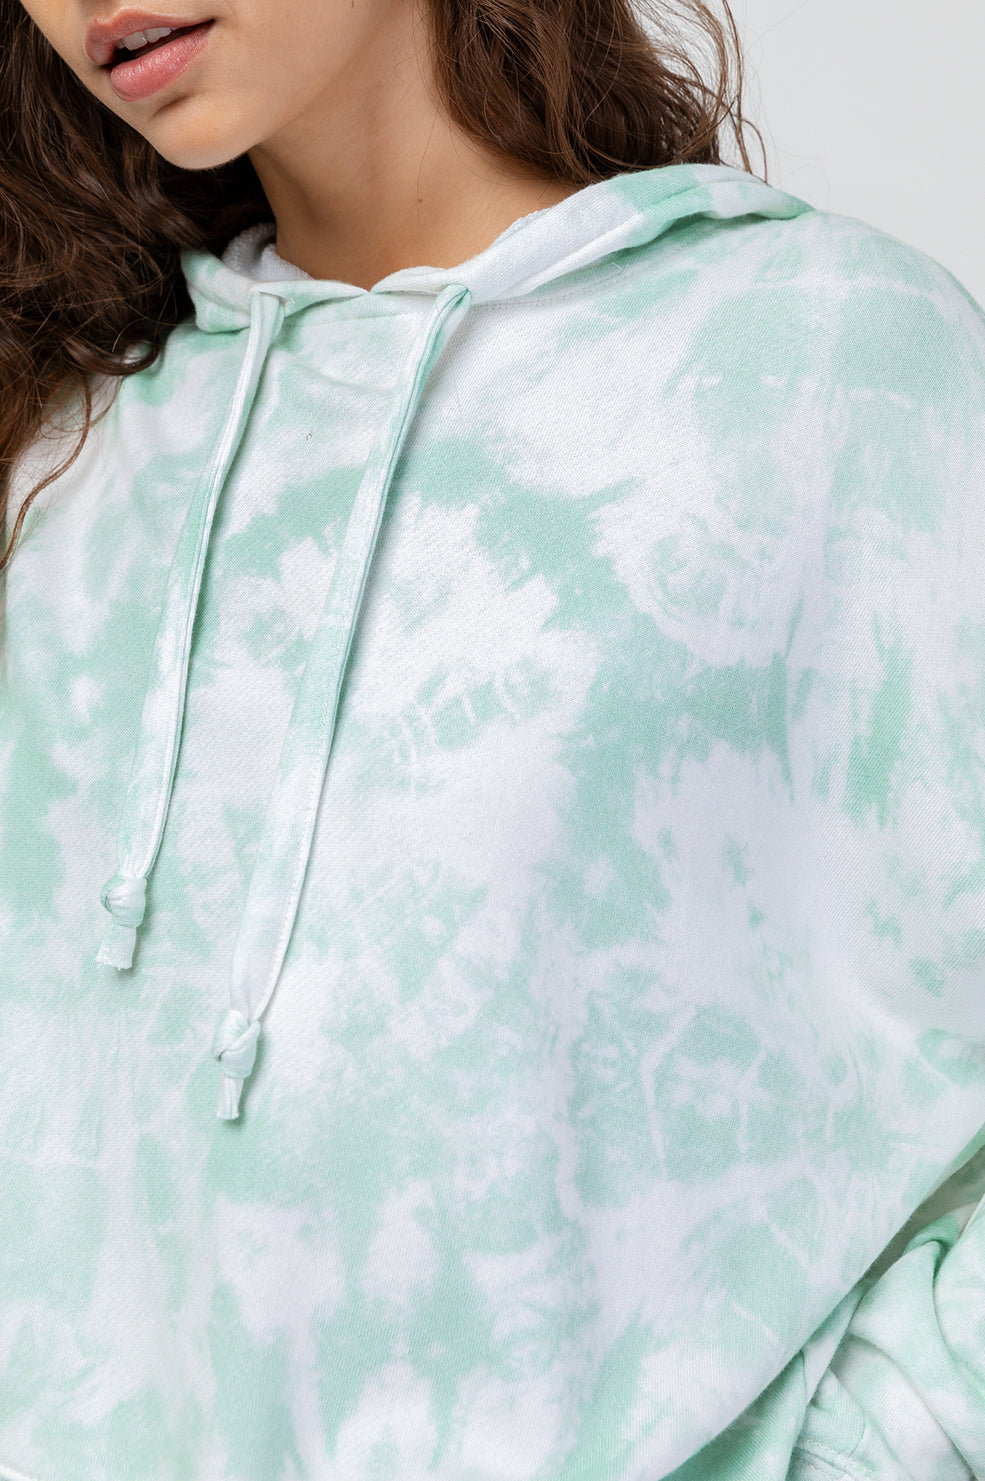 nico mint tie dye sweatshirt close-up